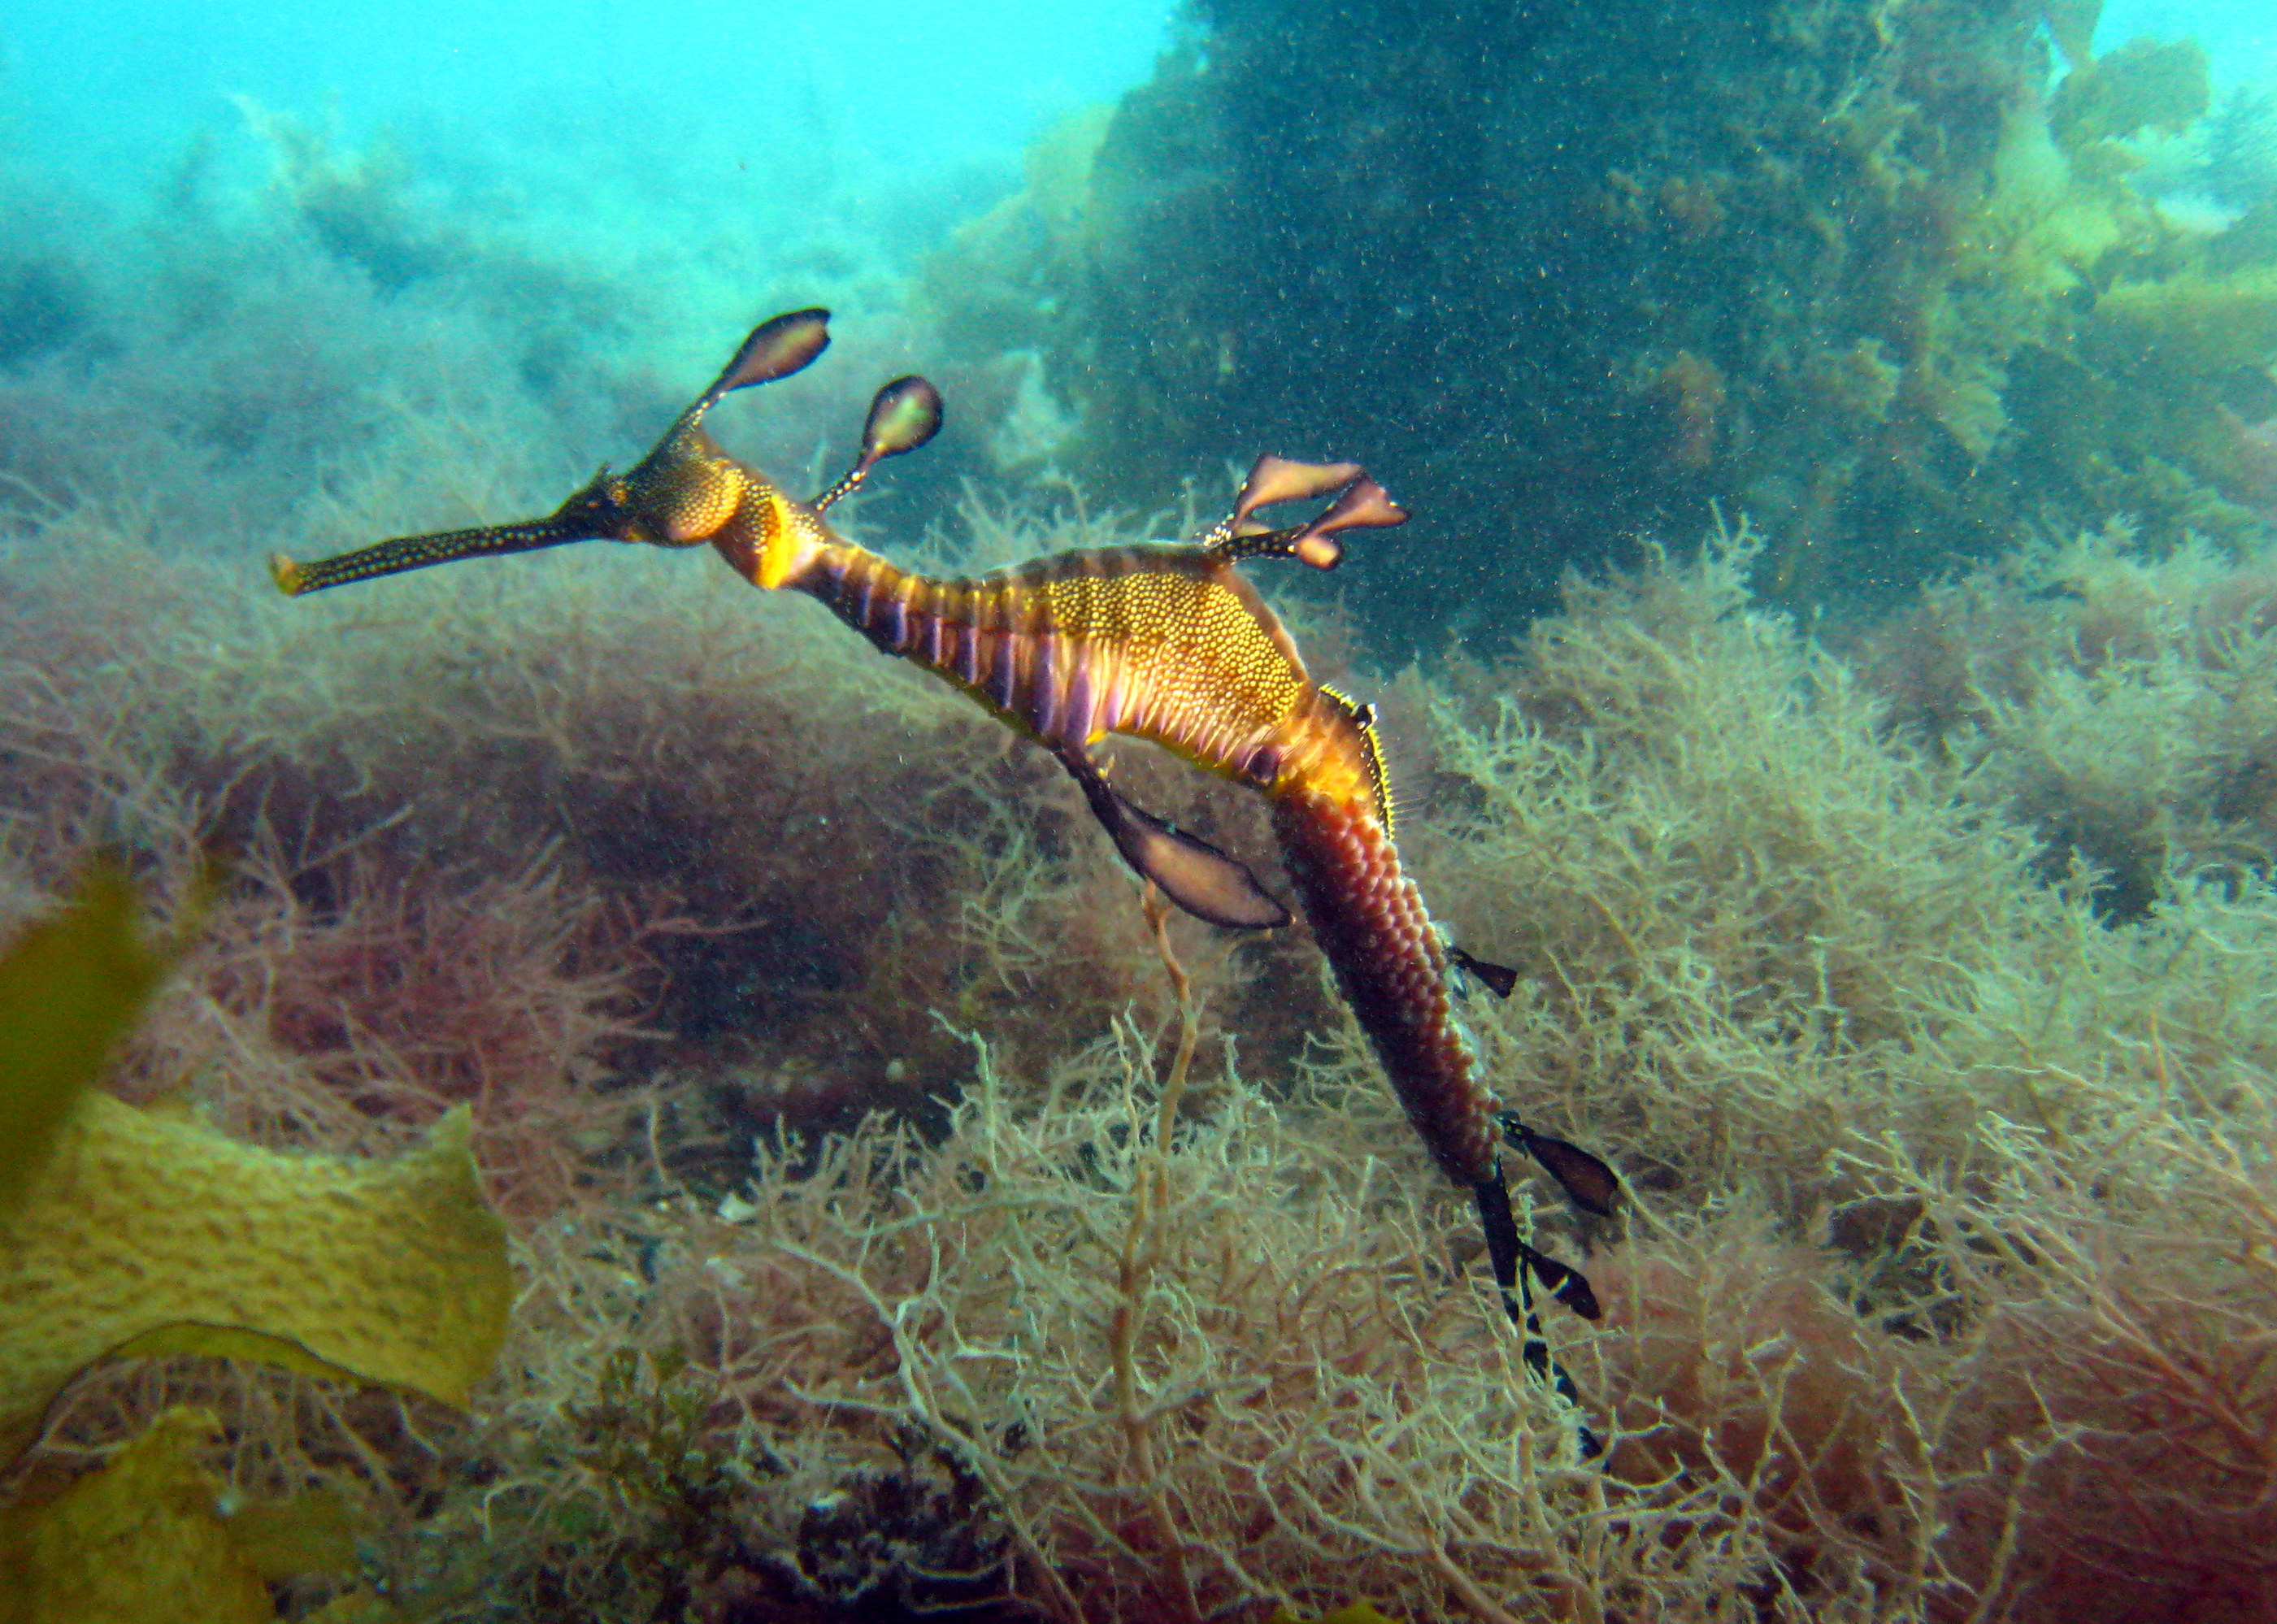 Leafy Sea Dragon Full HD Wallpaper And Background Image